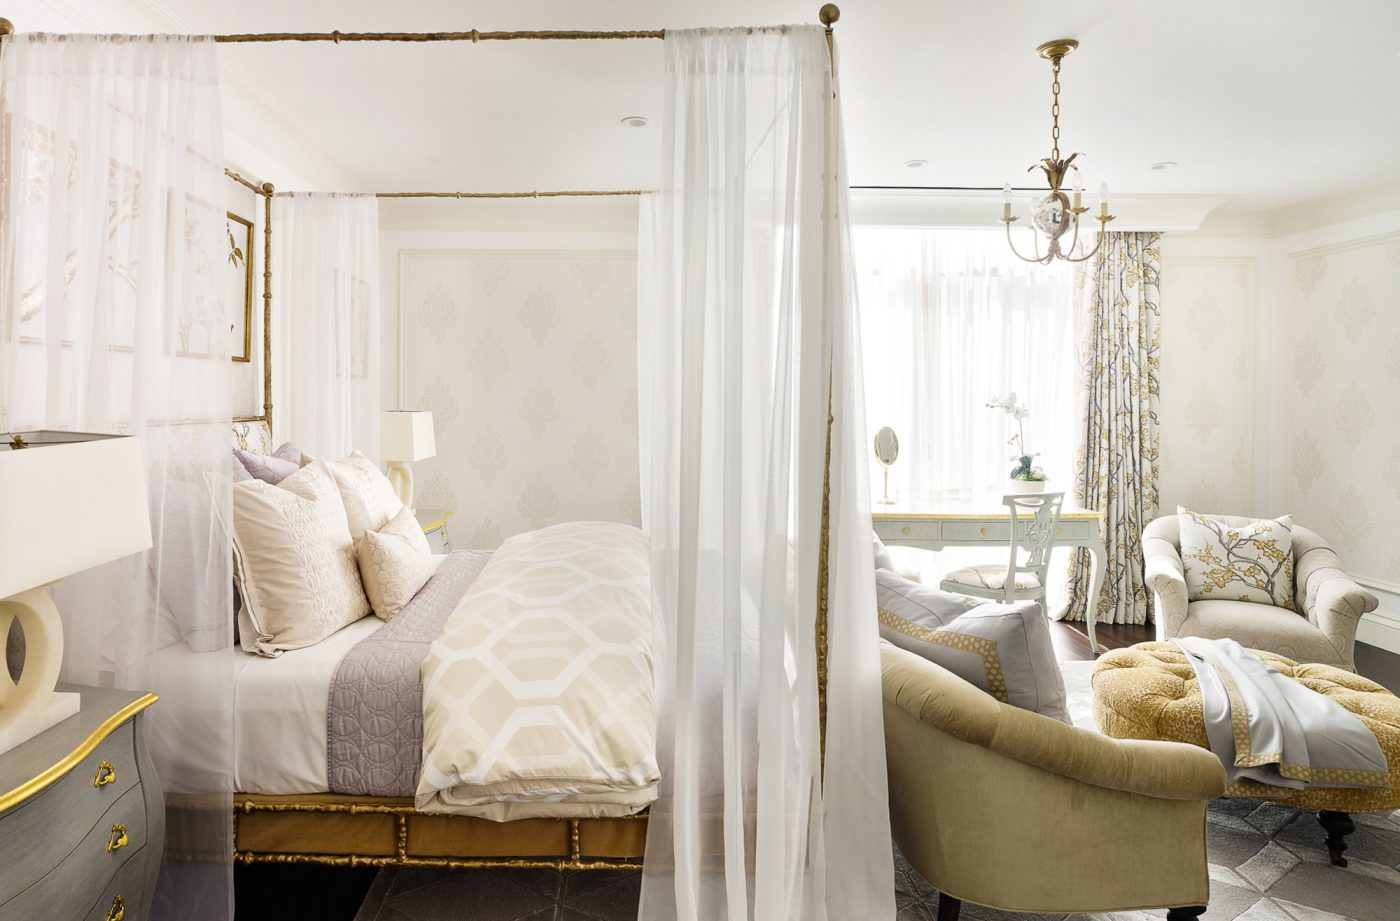 French Inspired Bedroom & Bath